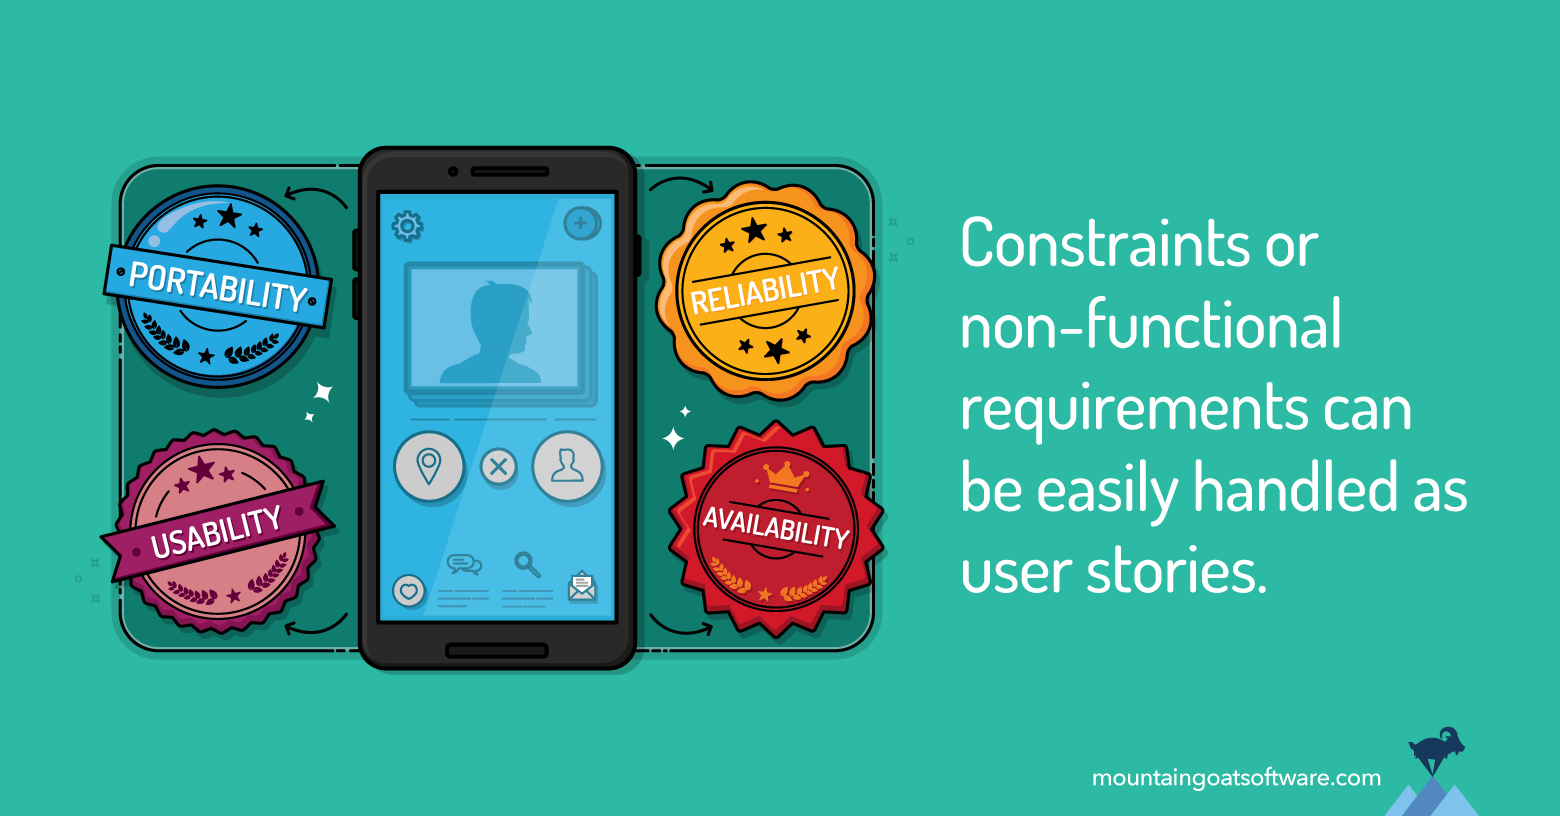 Non-functional Requirements as User Stories